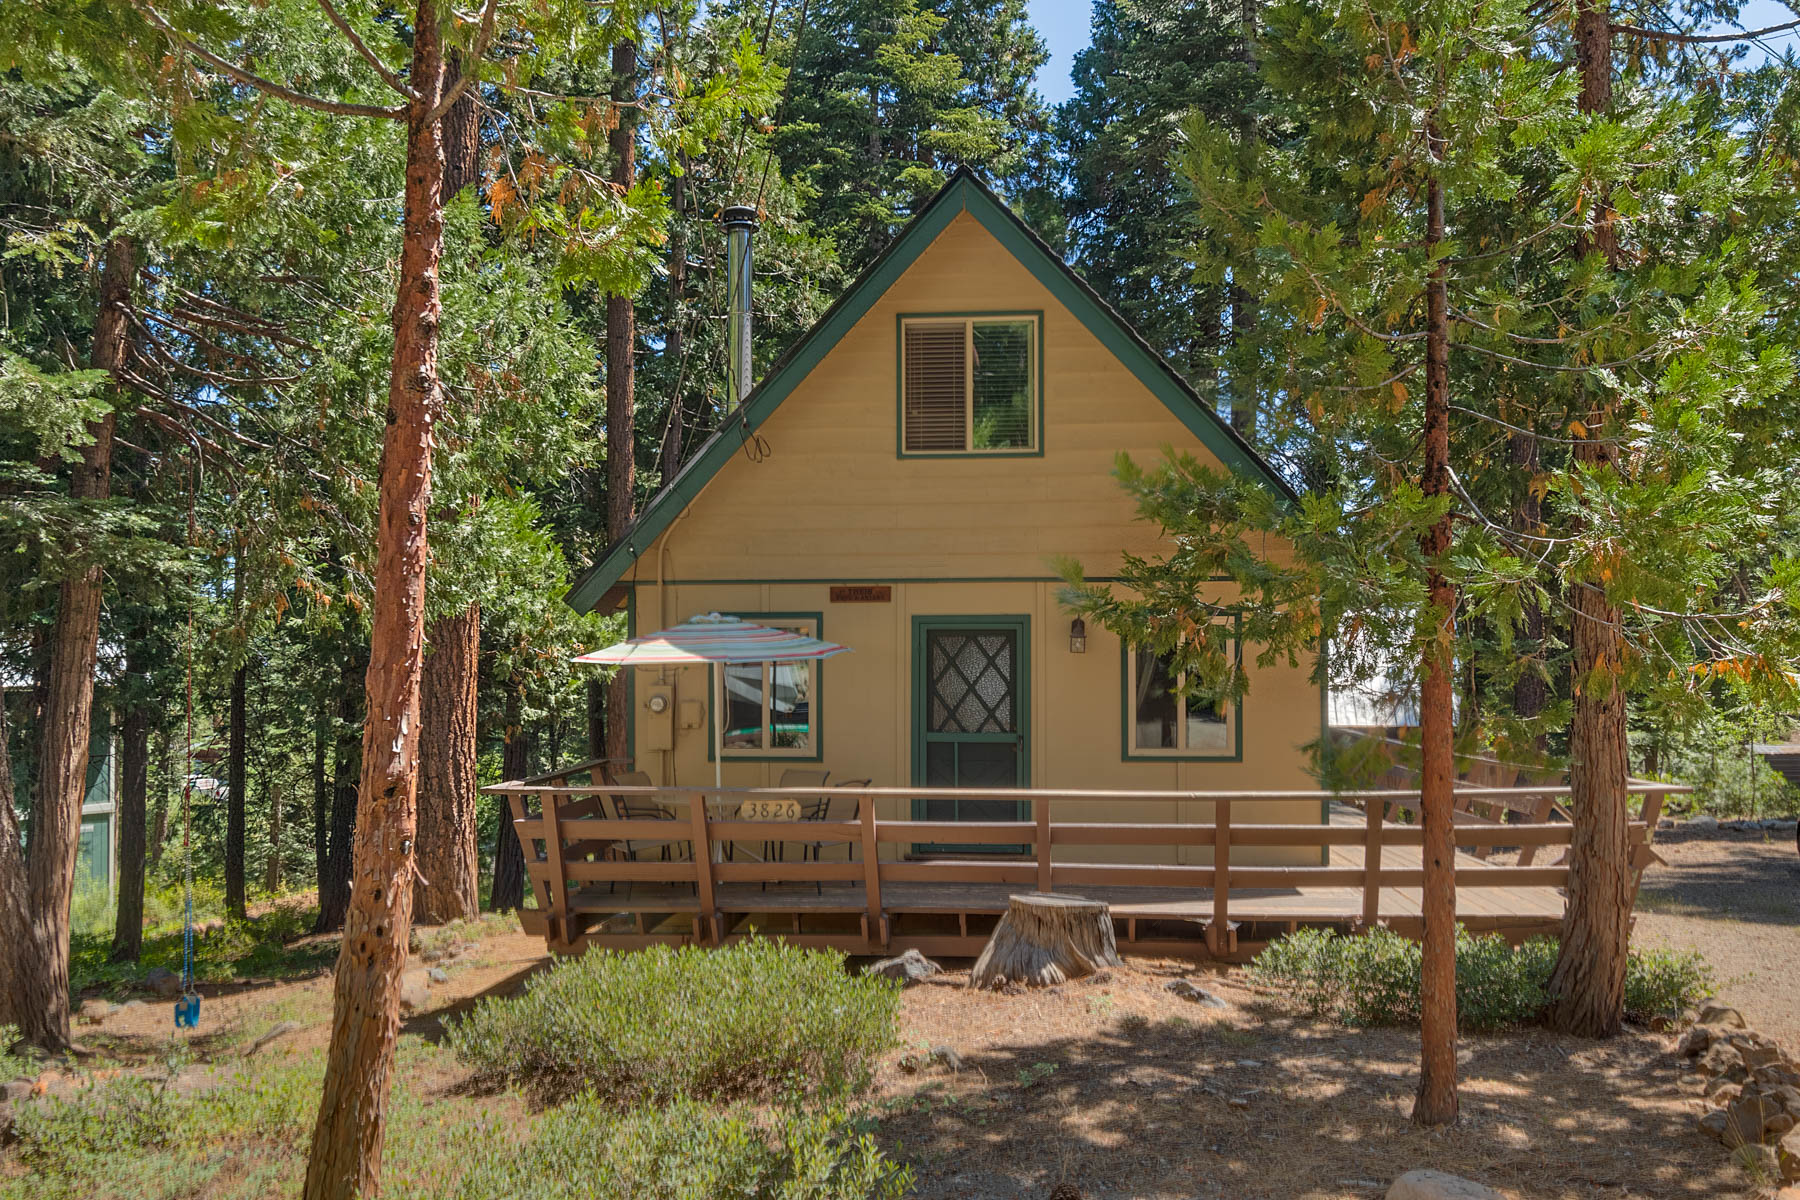 Single Family Homes for Active at Charming Carnelian Bay cabin 3826 Dinah Road Carnelian Bay, California 96140 United States